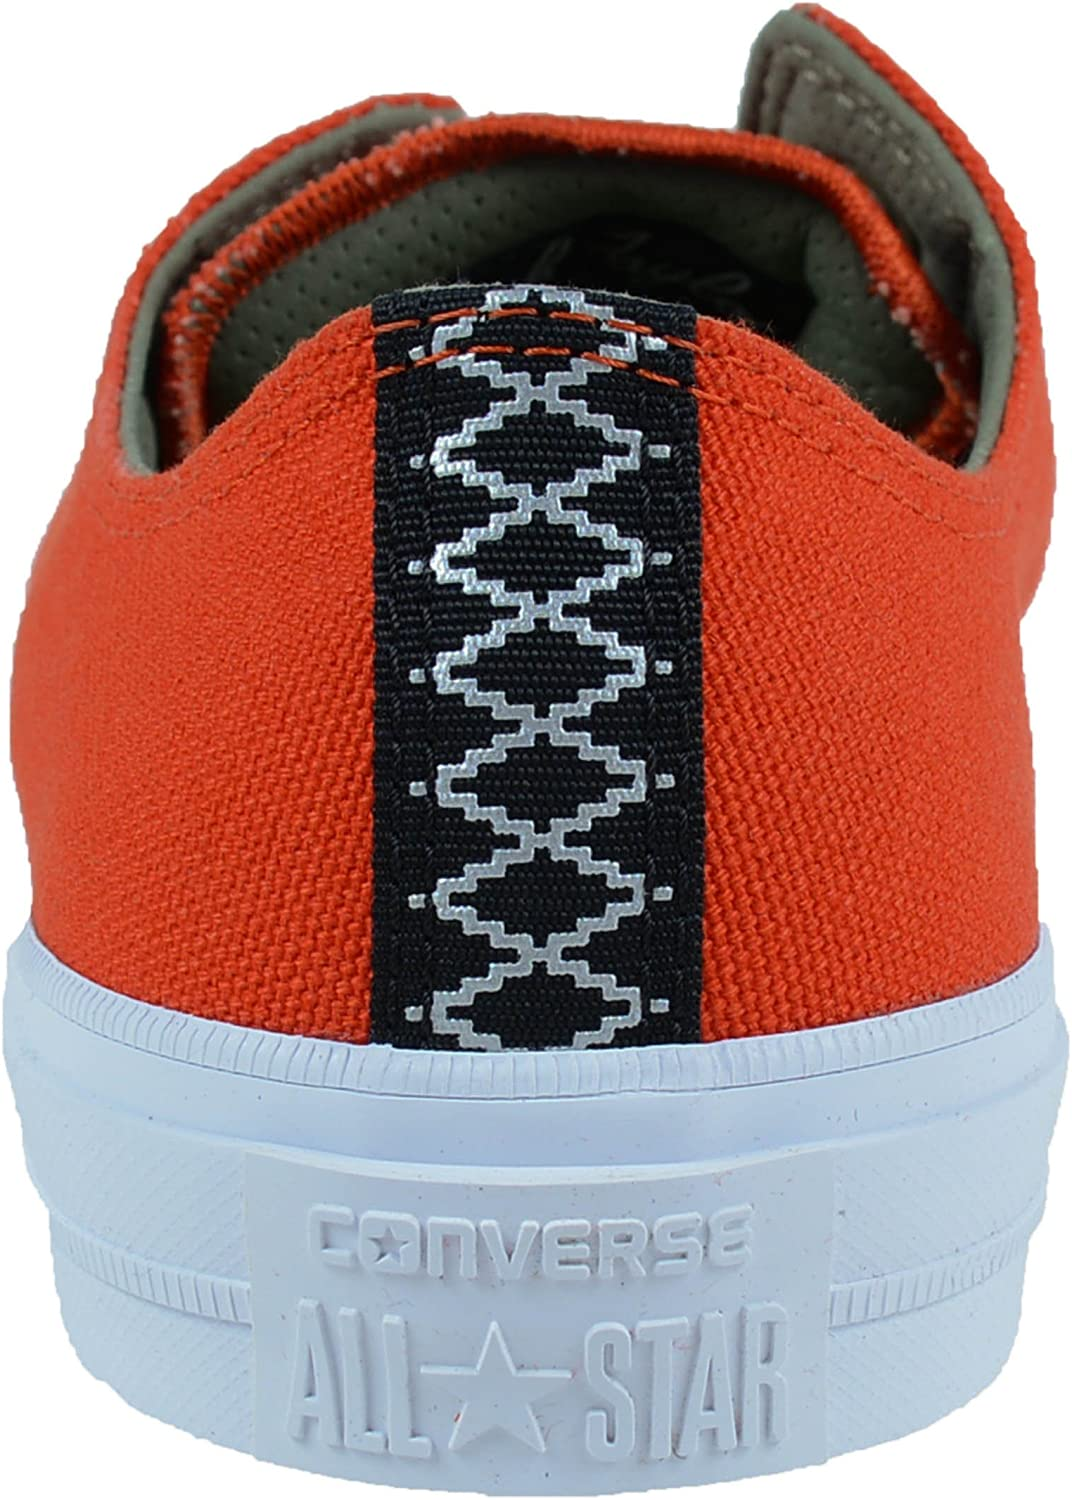 CONVERSE CHUCK TAYLOR ALL-STAR II SHIELD CANVAS OXFORDS SIGNAL RED GREEN 153539C